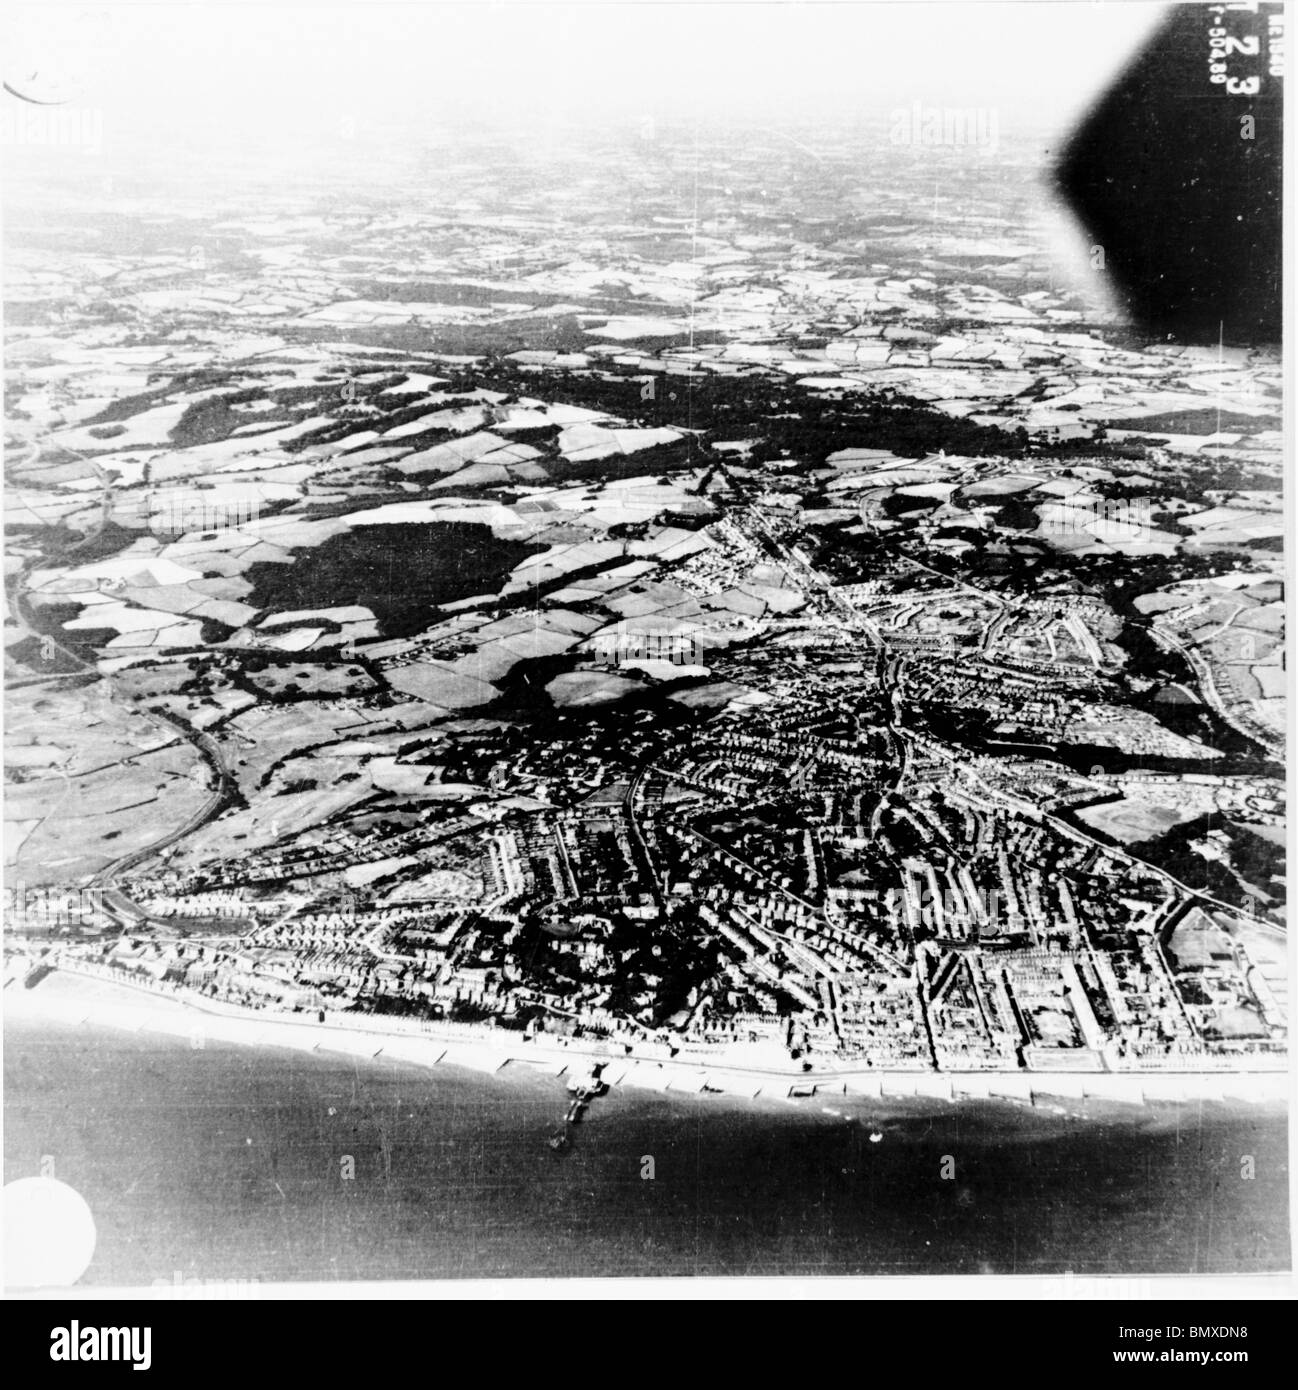 Hastings - Sussex 1940 Oblique View - Stock Image